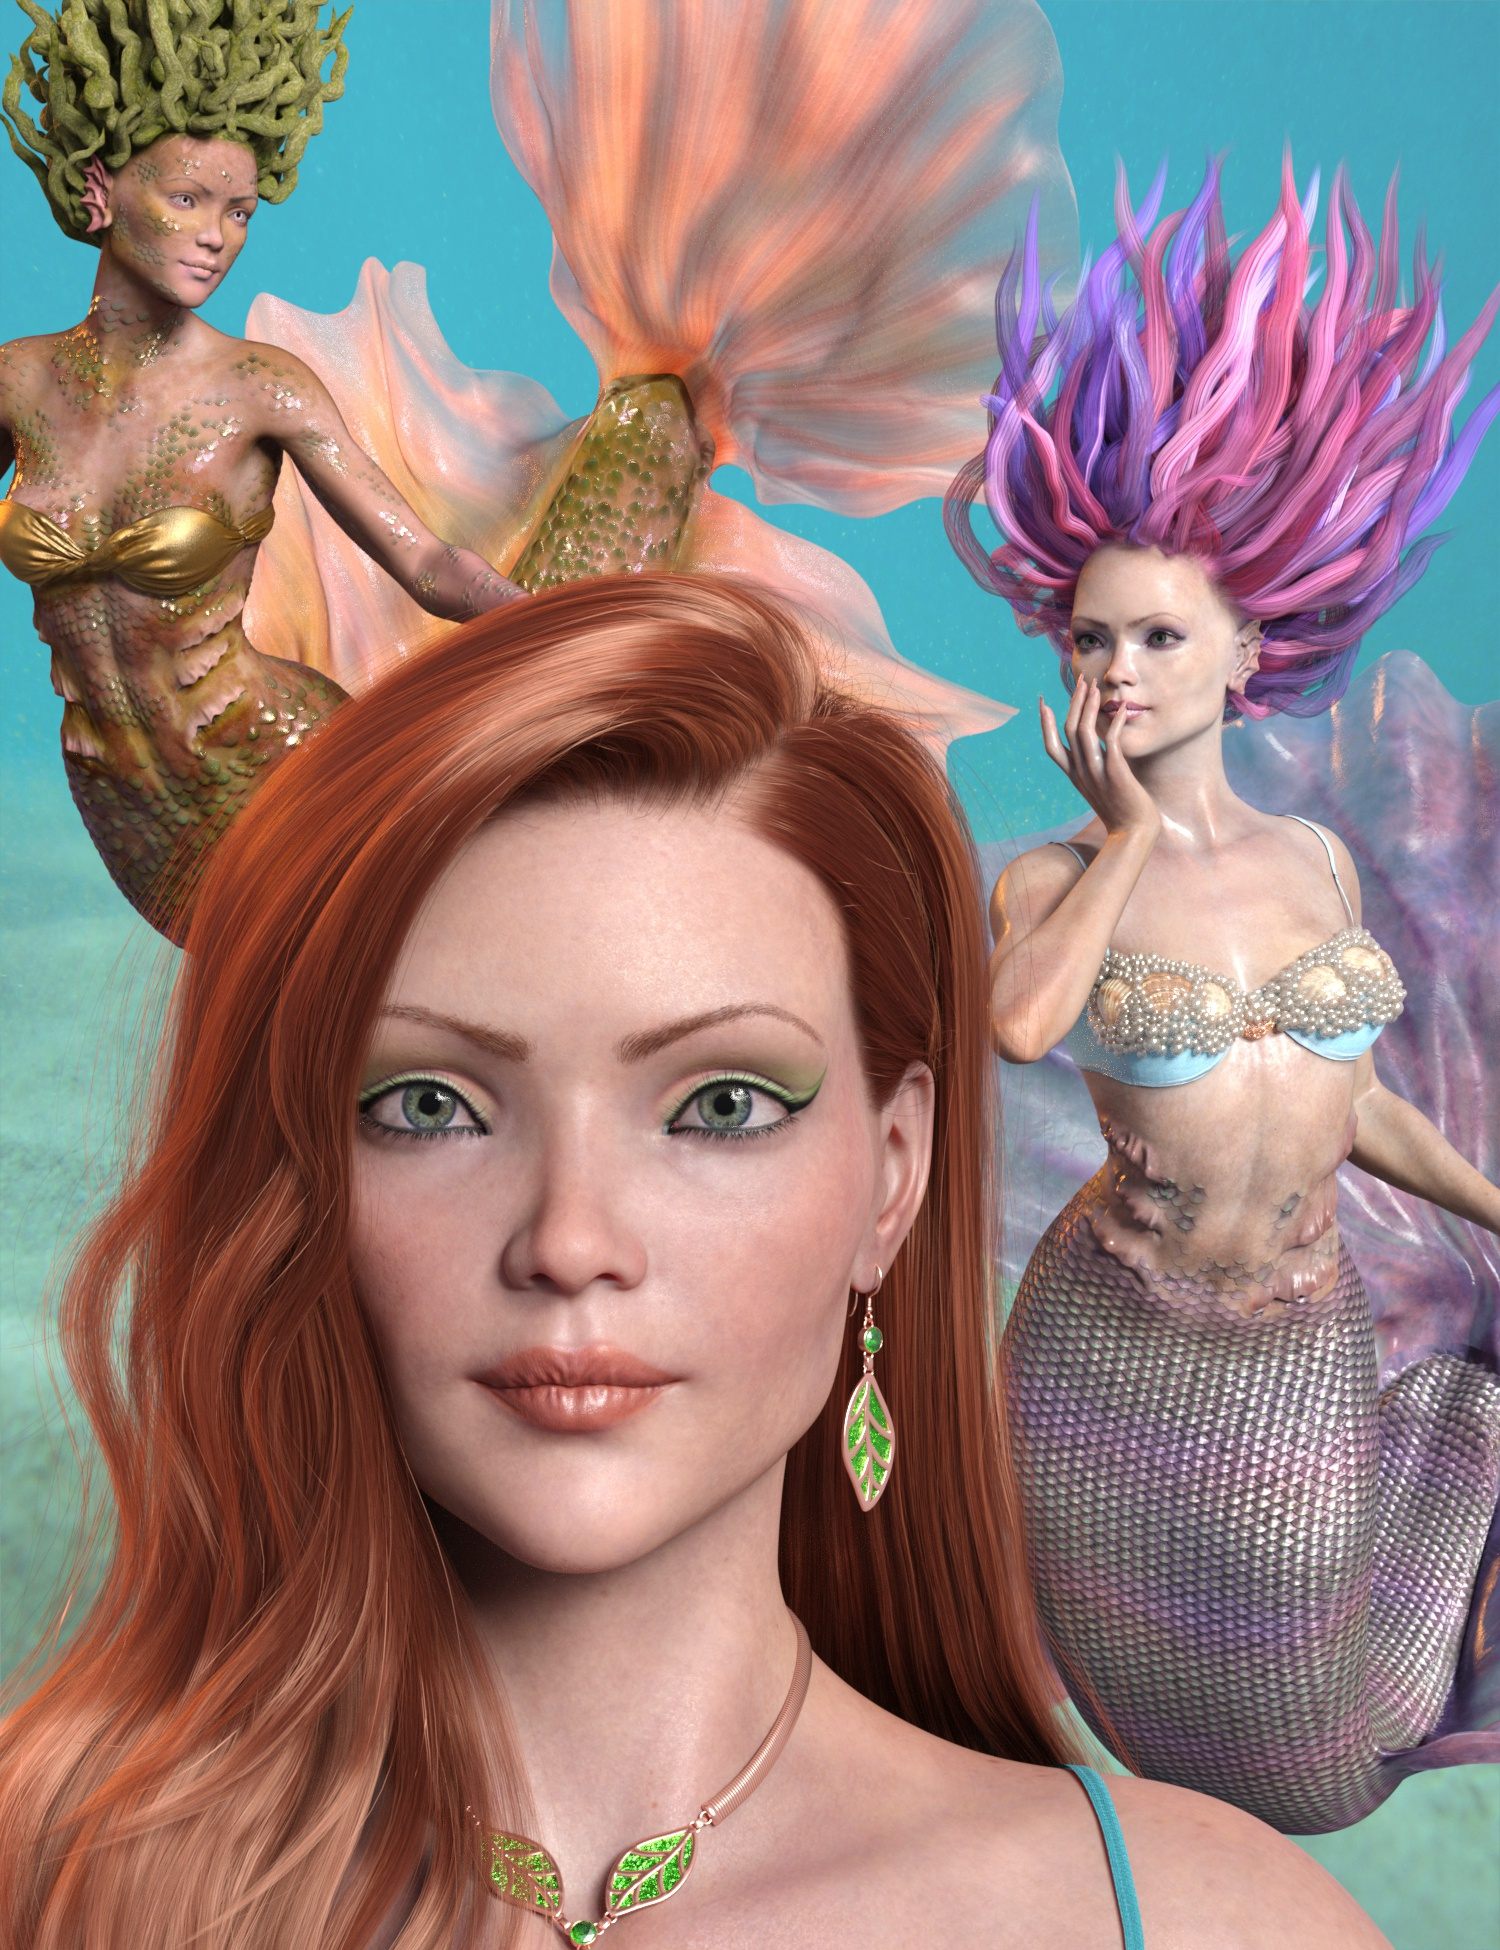 Marina Mermaid Triplet for Genesis 8.1 Female and Coral 8.1 Tail by: 3D-GHDesignAe Ti, 3D Models by Daz 3D